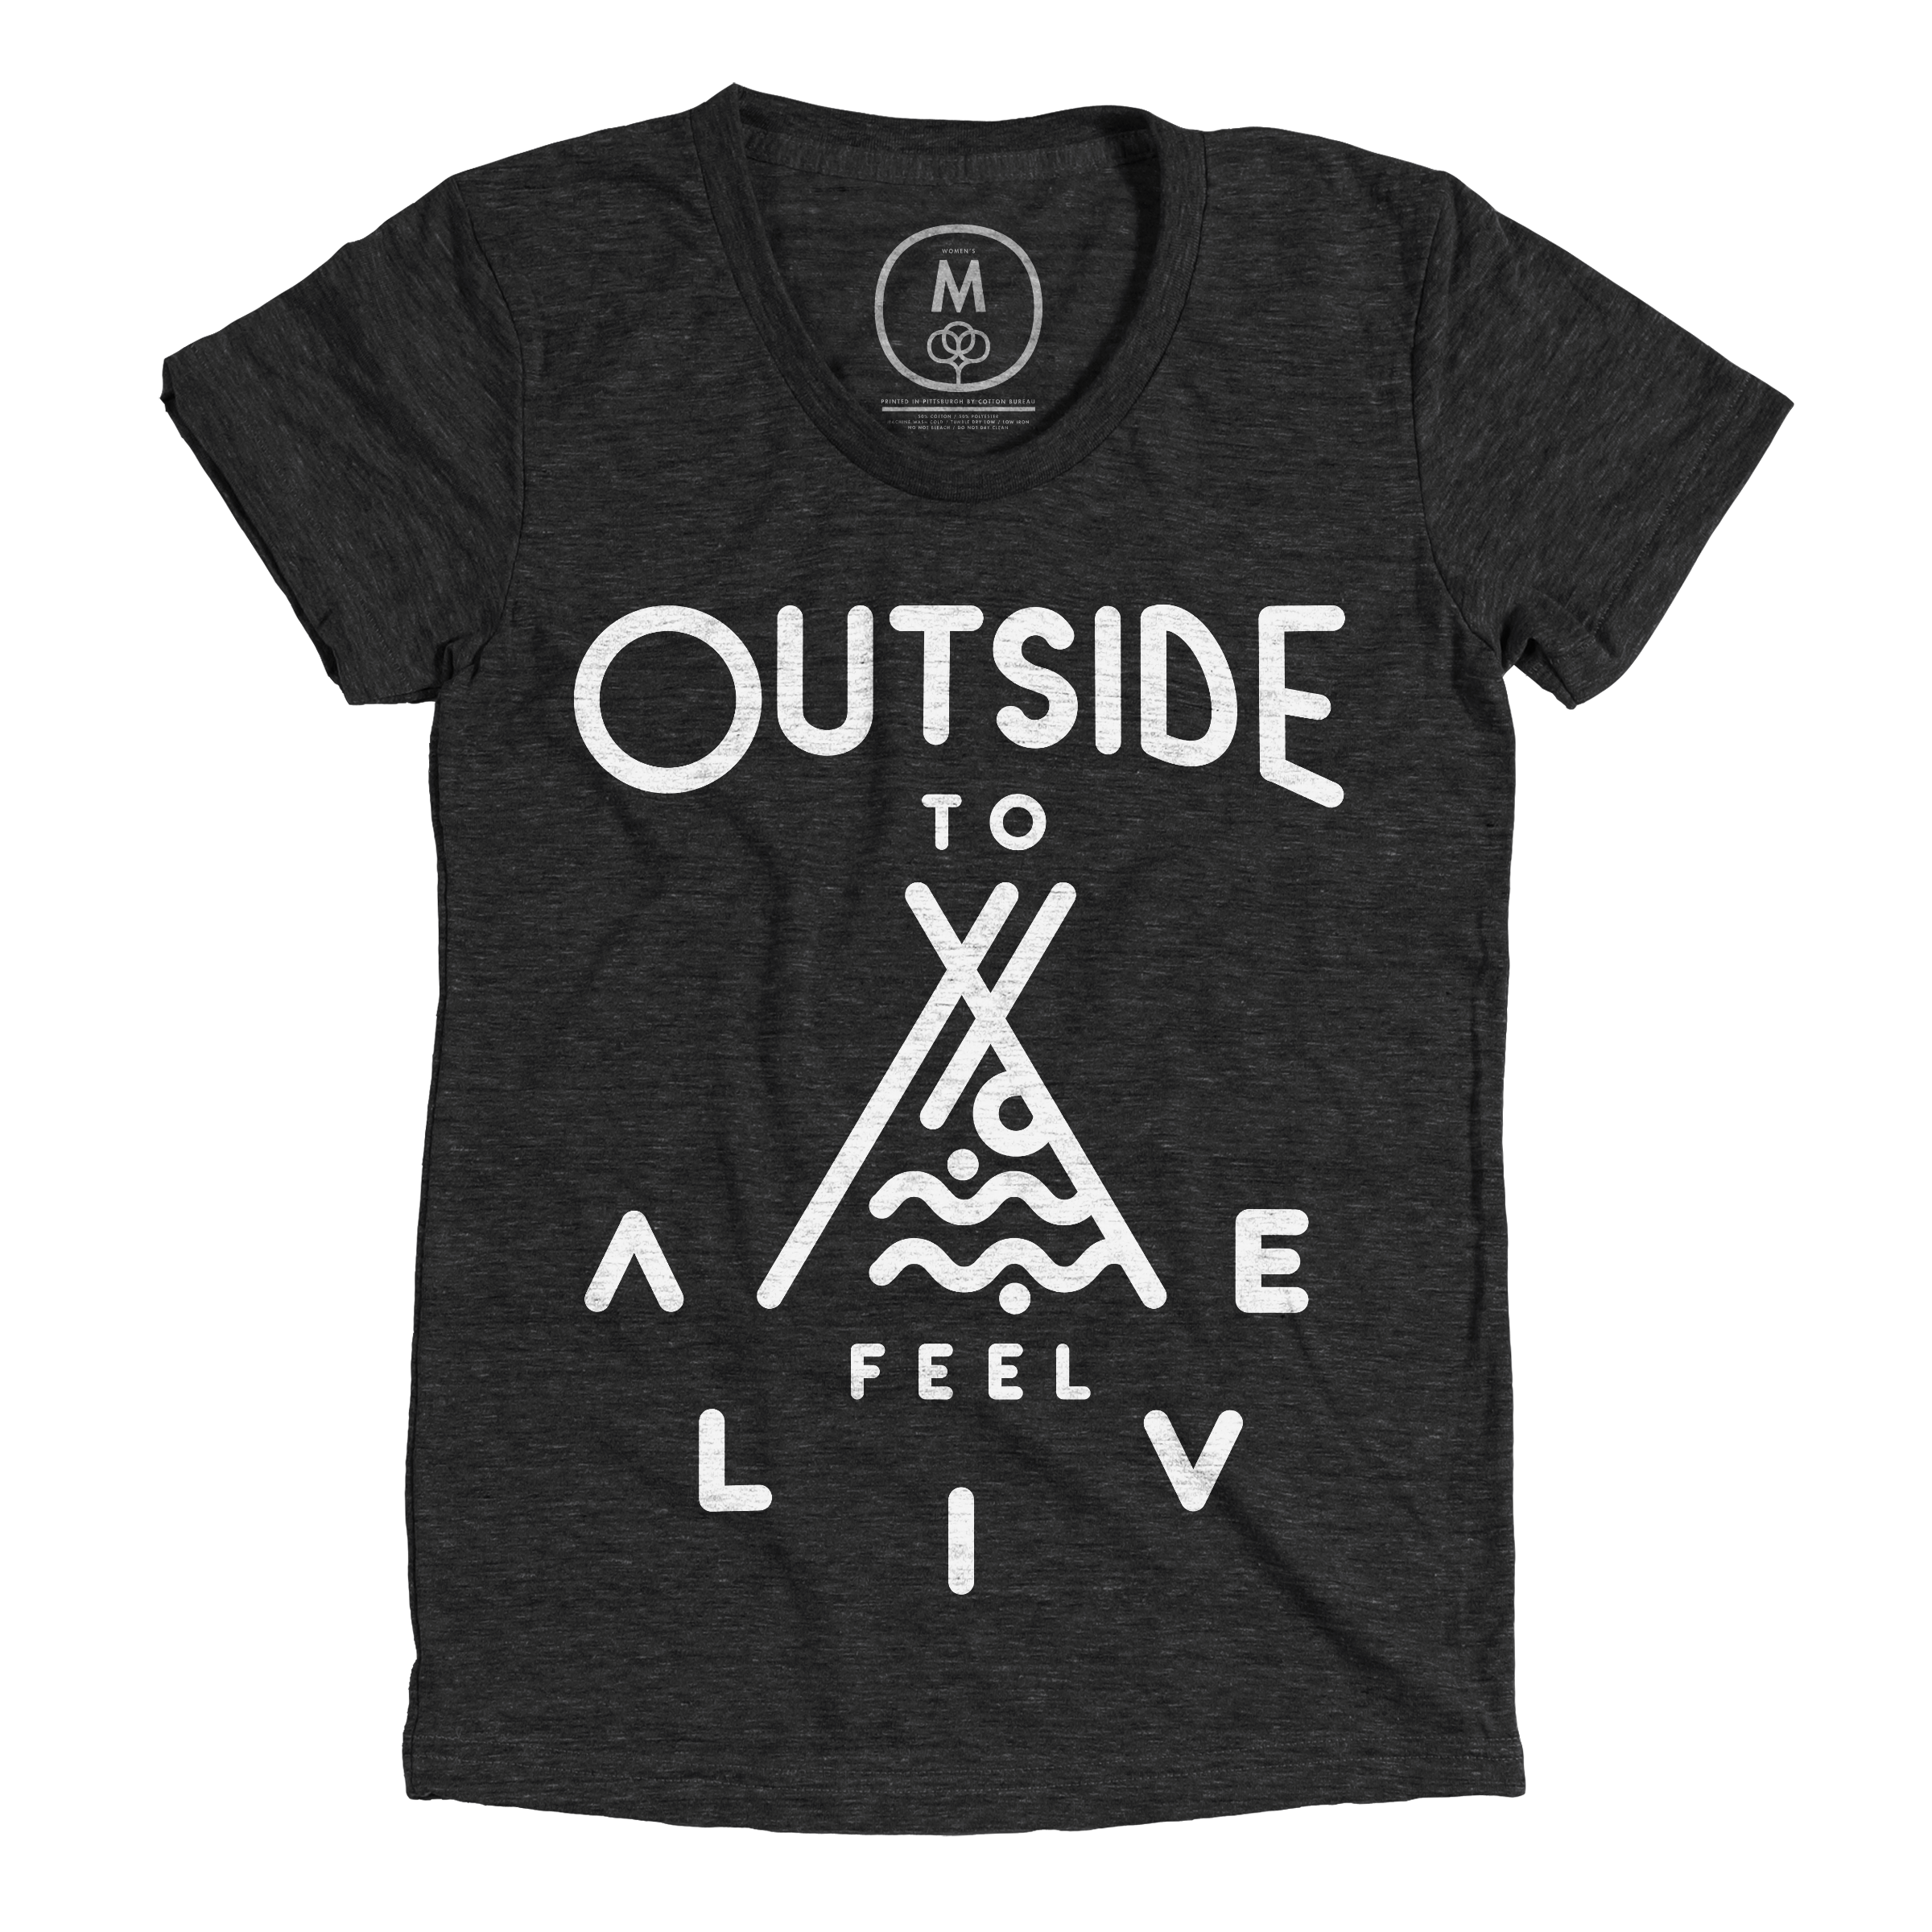 Outside to Feel Alive Vintage Black (Women's)